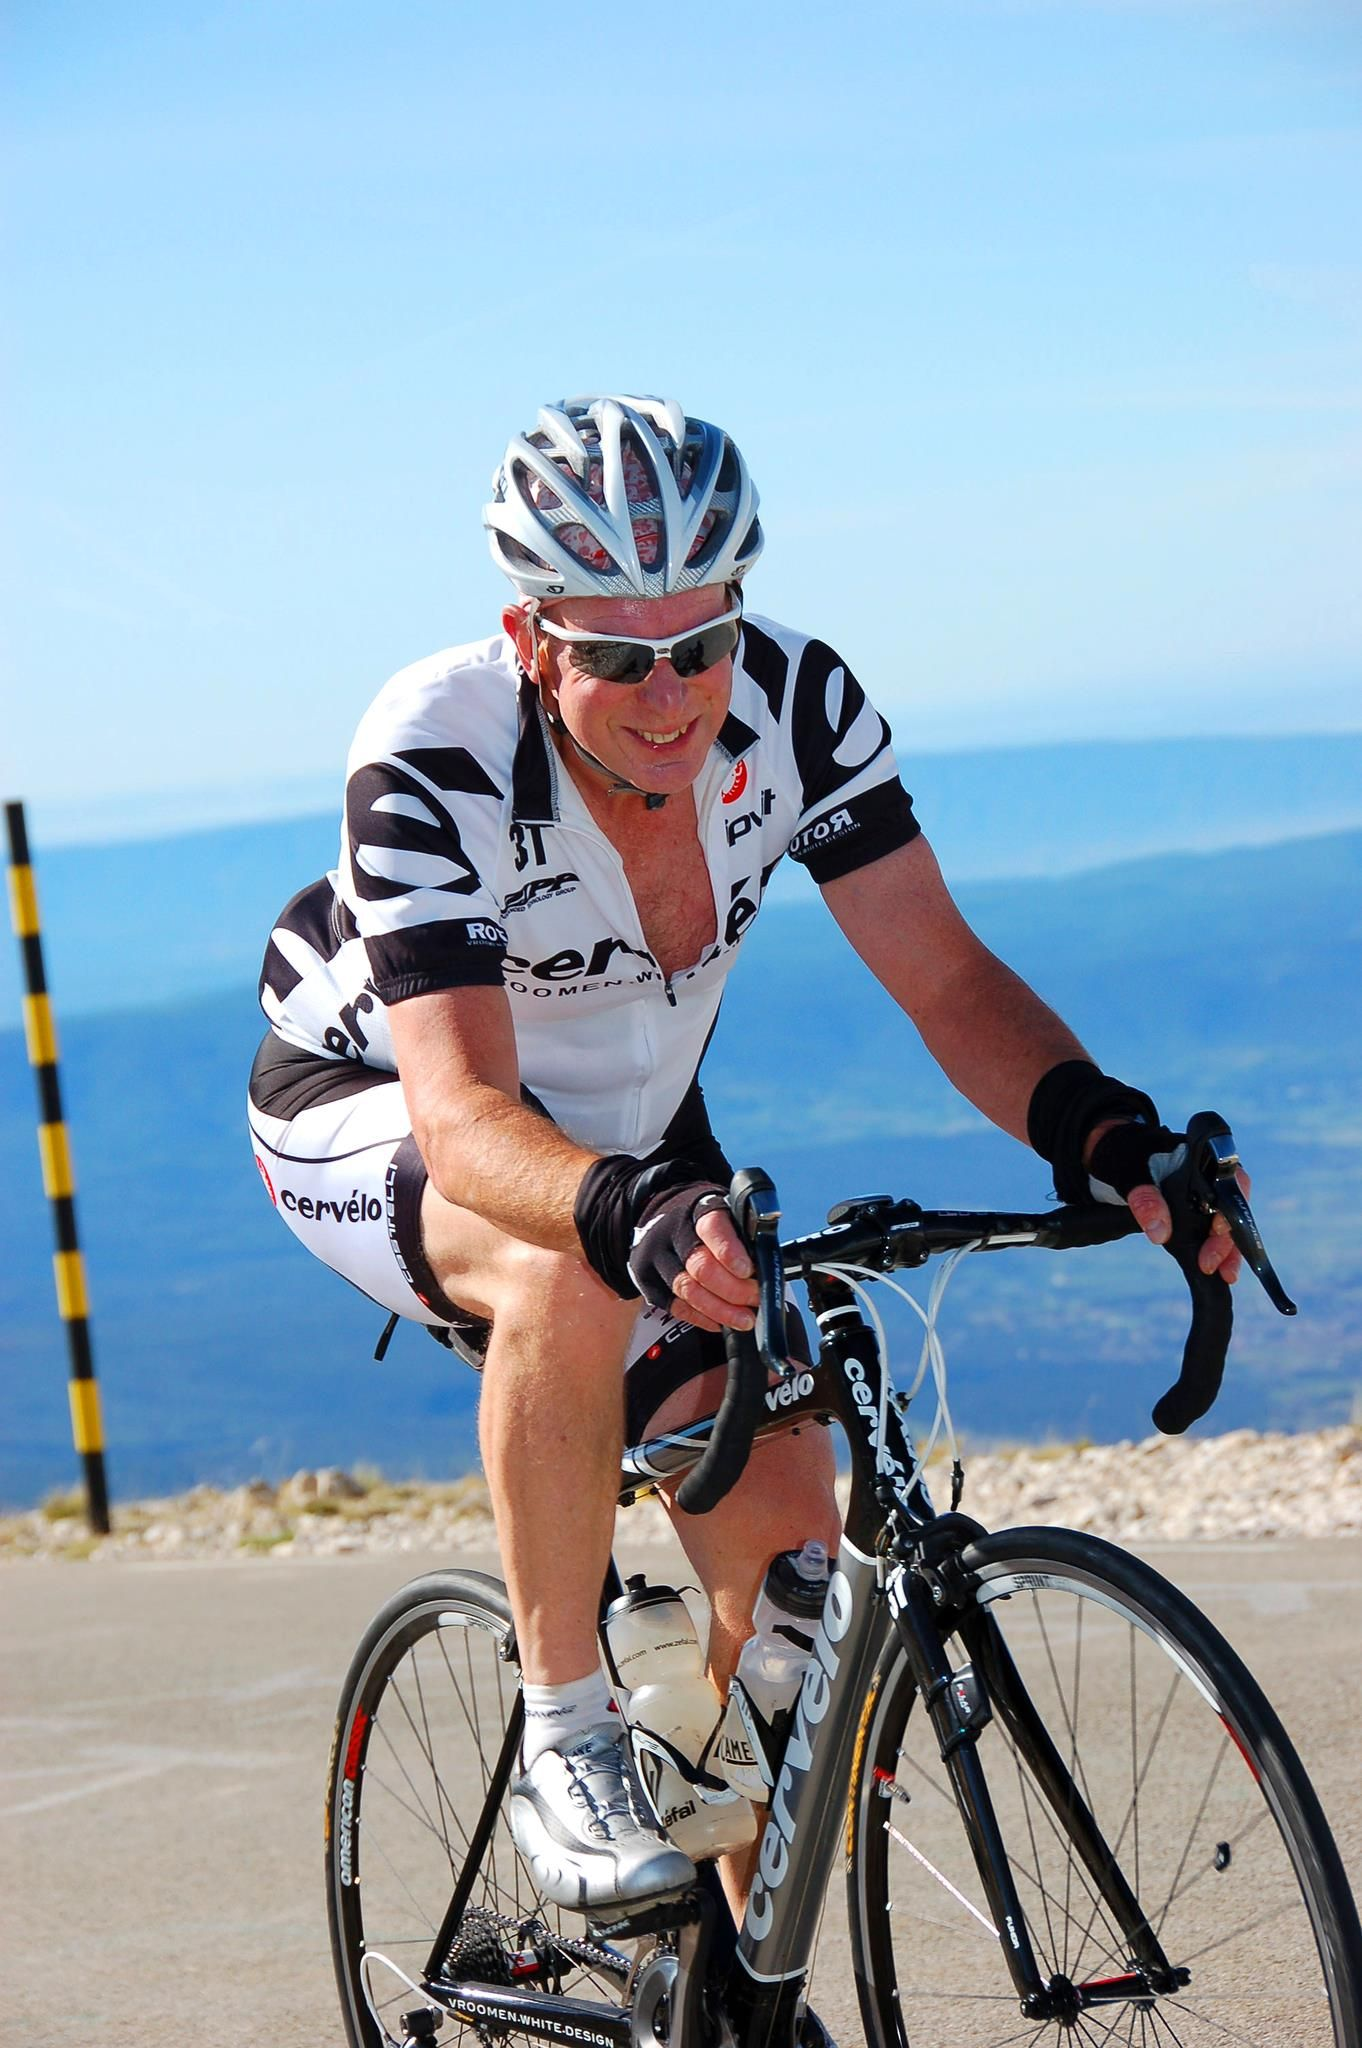 Me, climbing Ventoux 2012. Great!